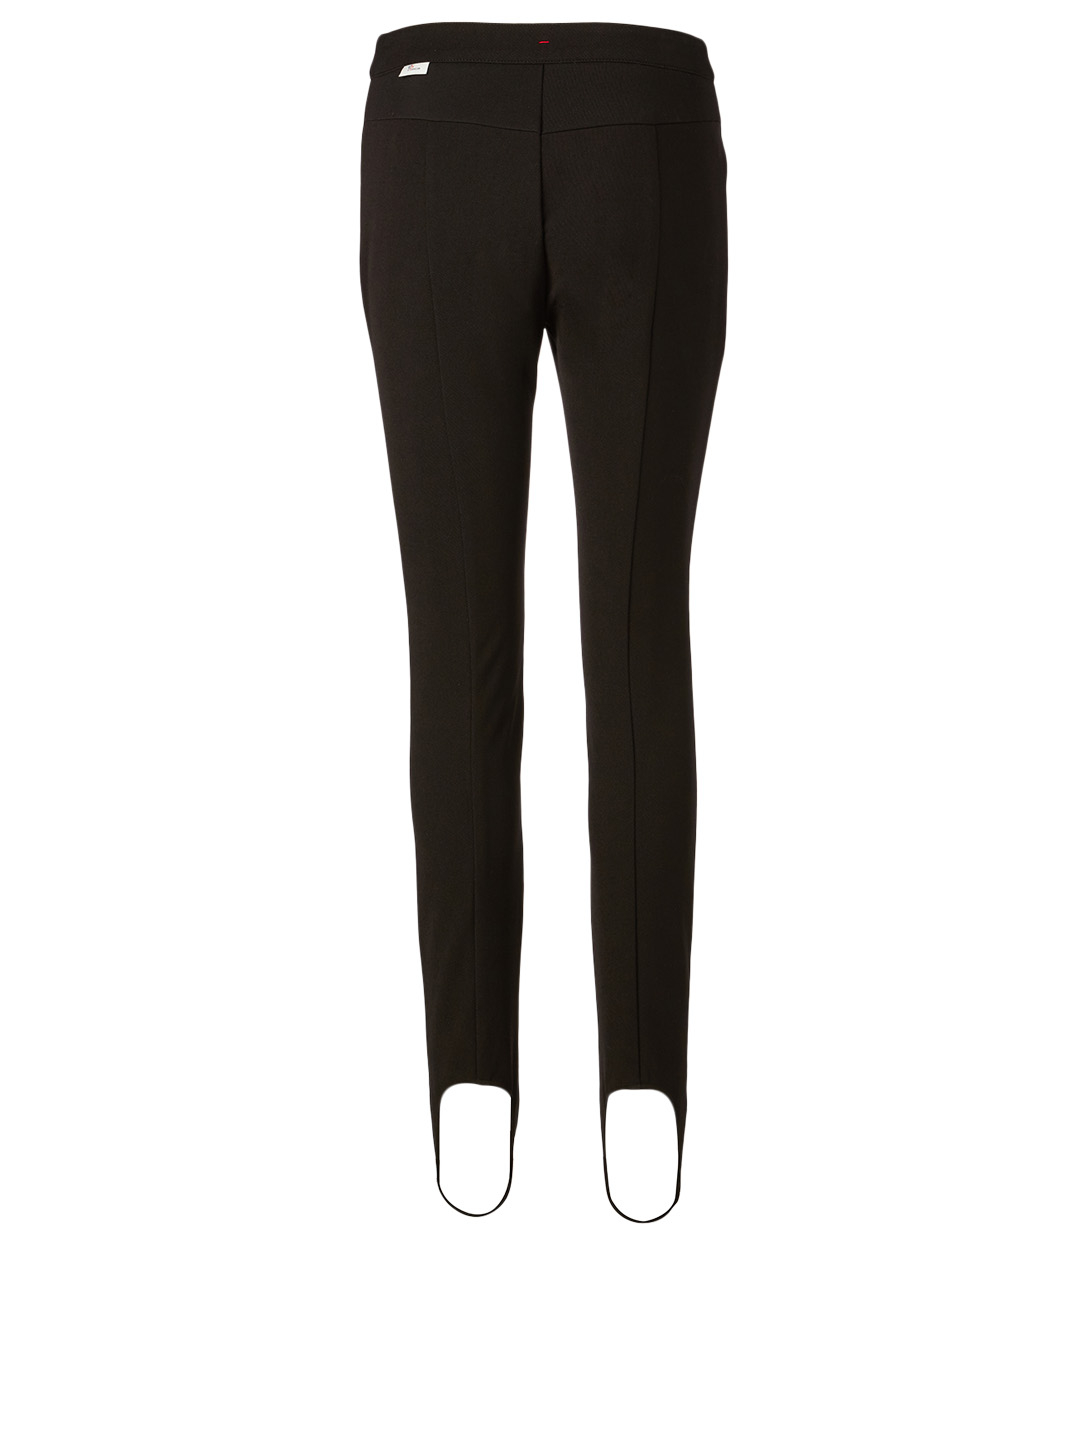 MONCLER GRENOBLE Slim-Fit Ski Pants Women's Black